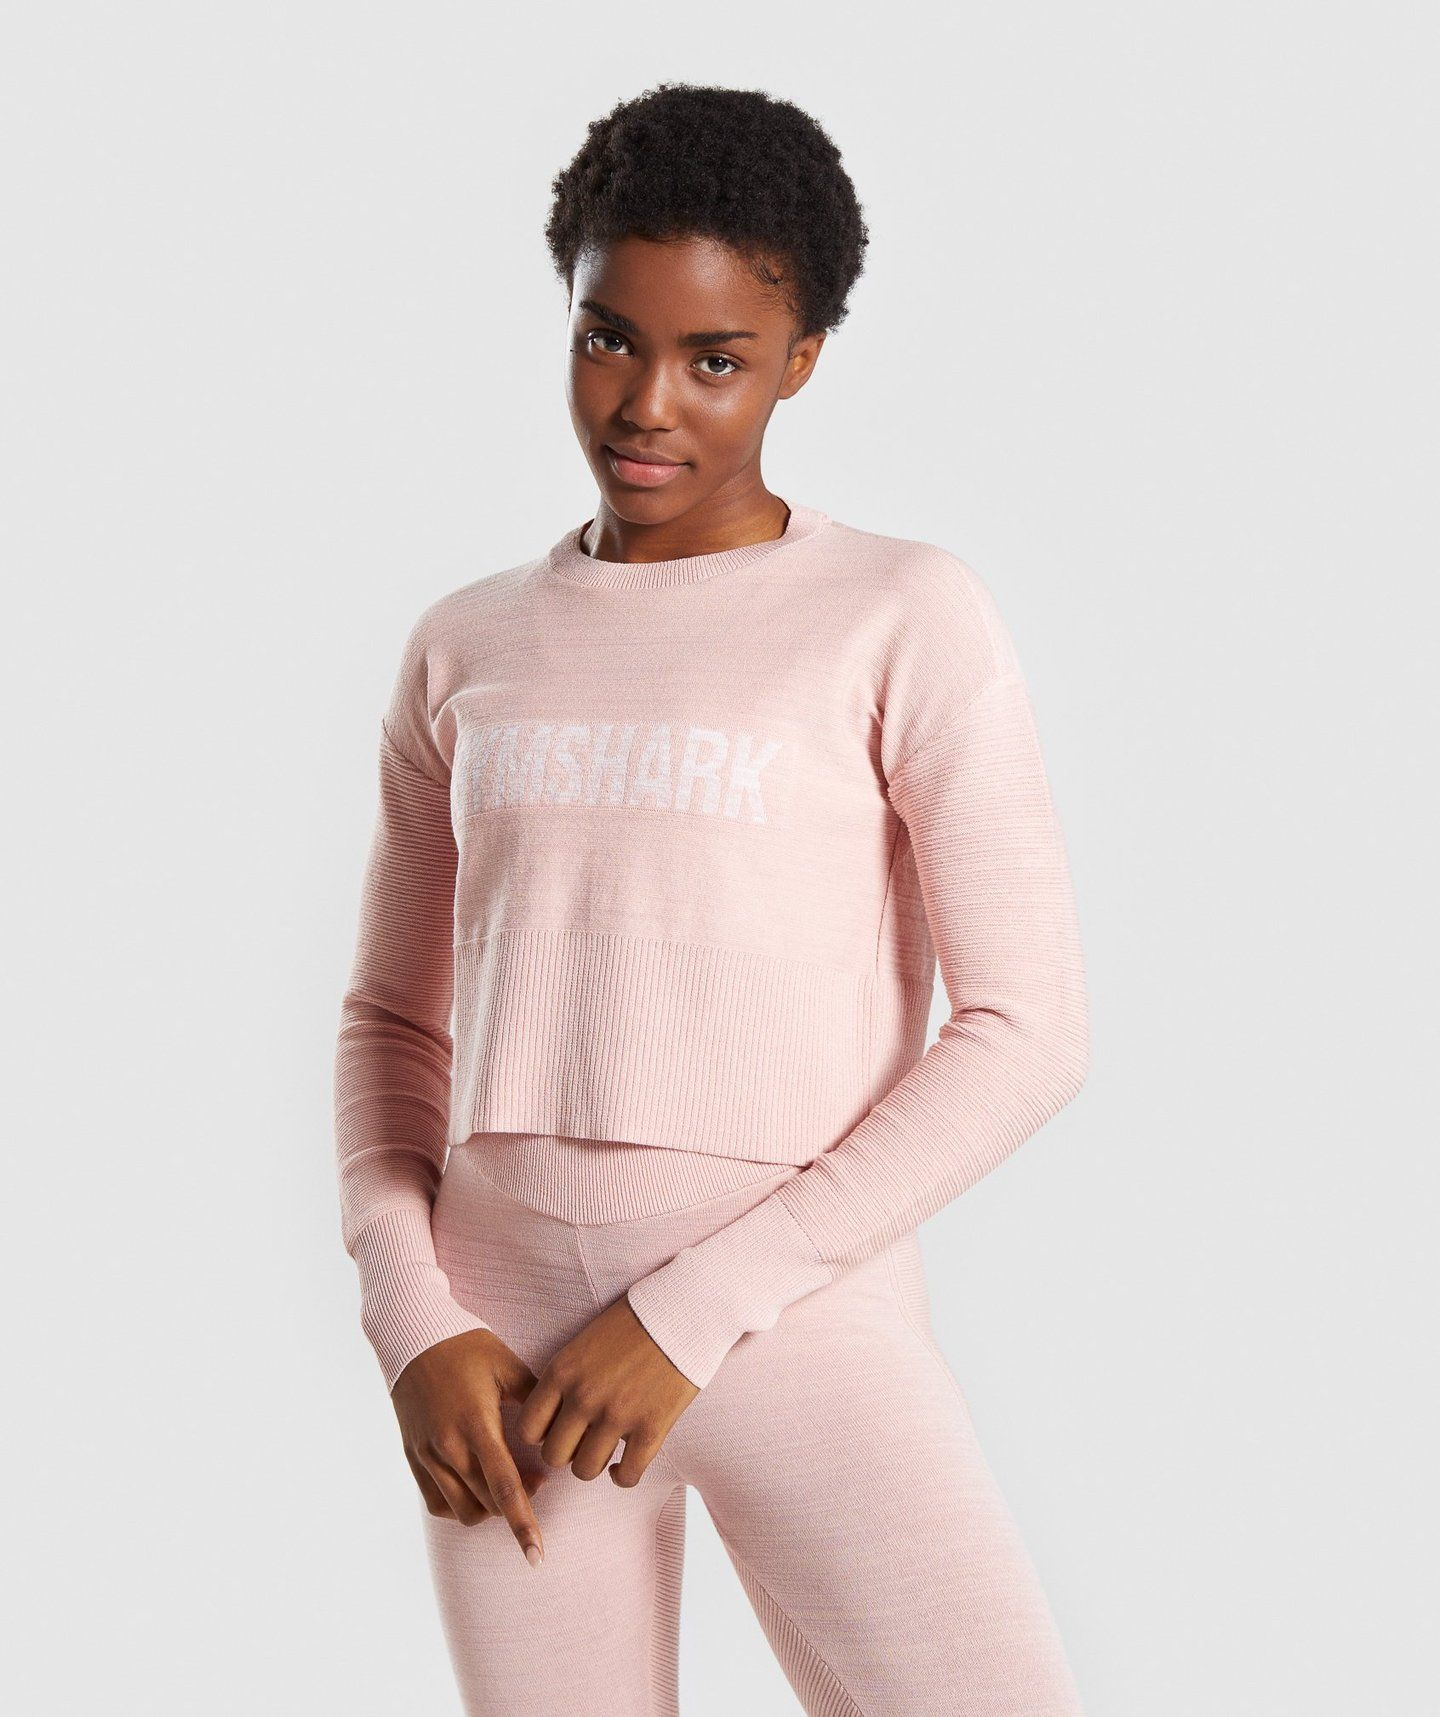 5a0e89e7 Gymshark Time Out Knit Sweater - Blush Nude in 2019 | Seamless | The ...